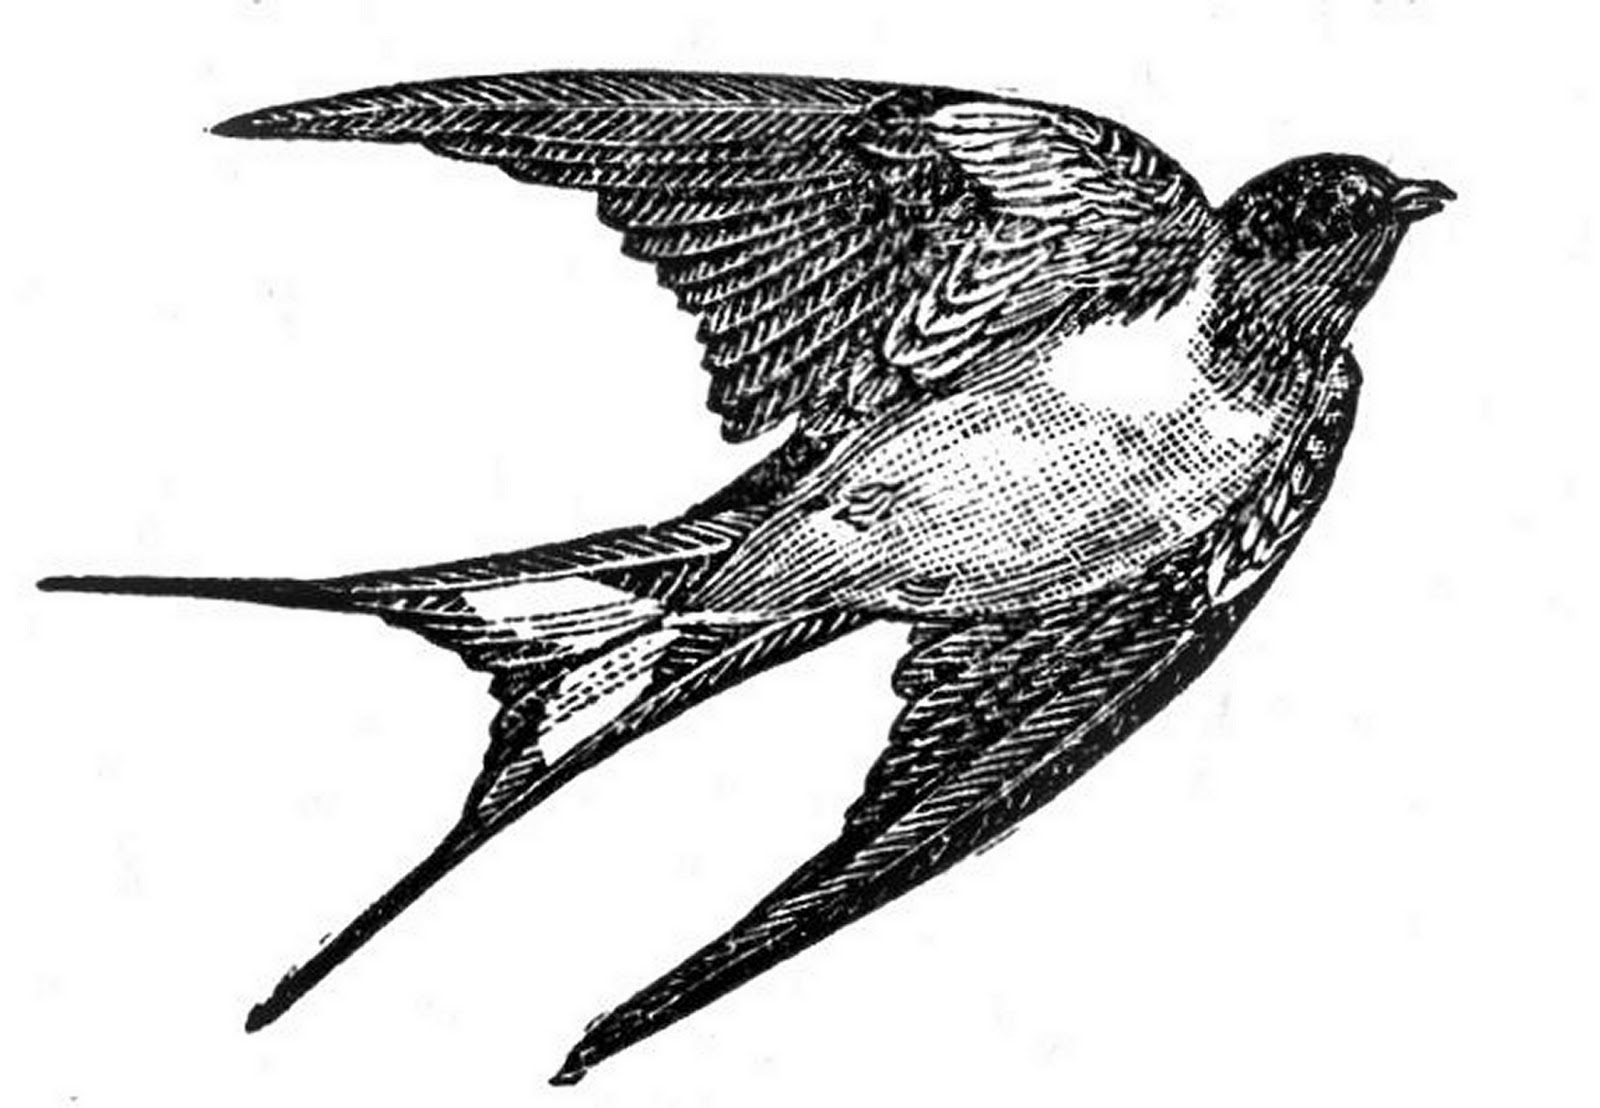 swallow bird drawing hirondelle et plumes swallow swaĺlowtattoo feather bird swallow drawing